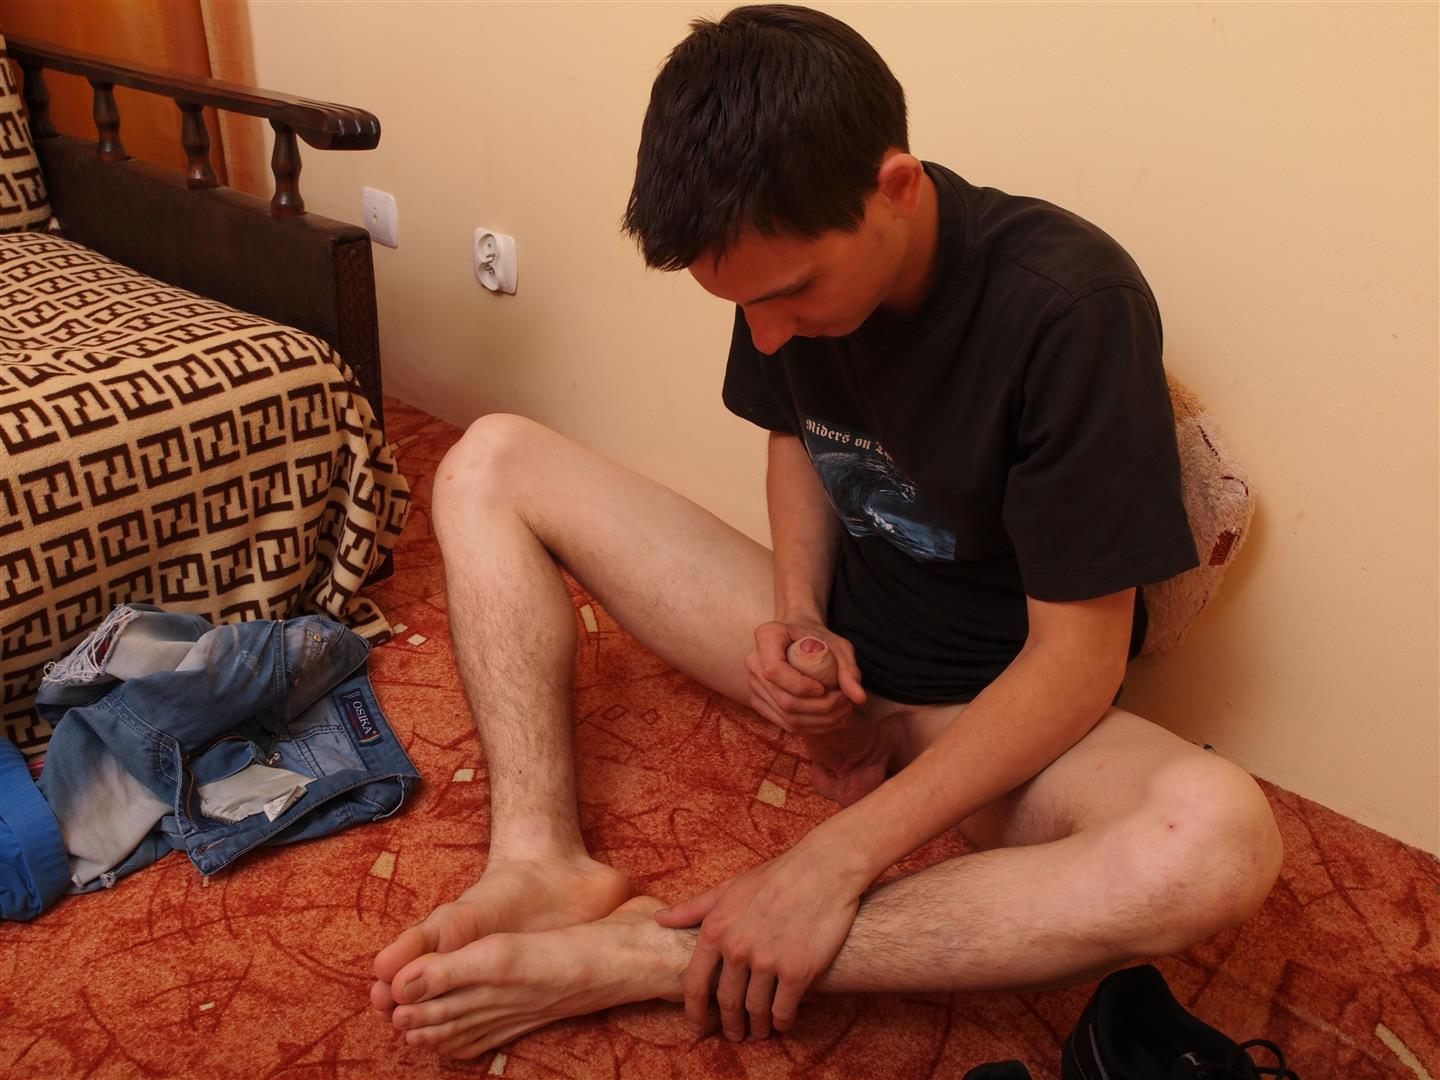 Toe-Sucking-Guys-Eryk-Twink-Playing-With-His-Feet-and-Big-Uncut-Cock-Amateur-Gay-Porn-14 Twink Uses His Shoes and Socks To Jerk His Thick Uncut Cock